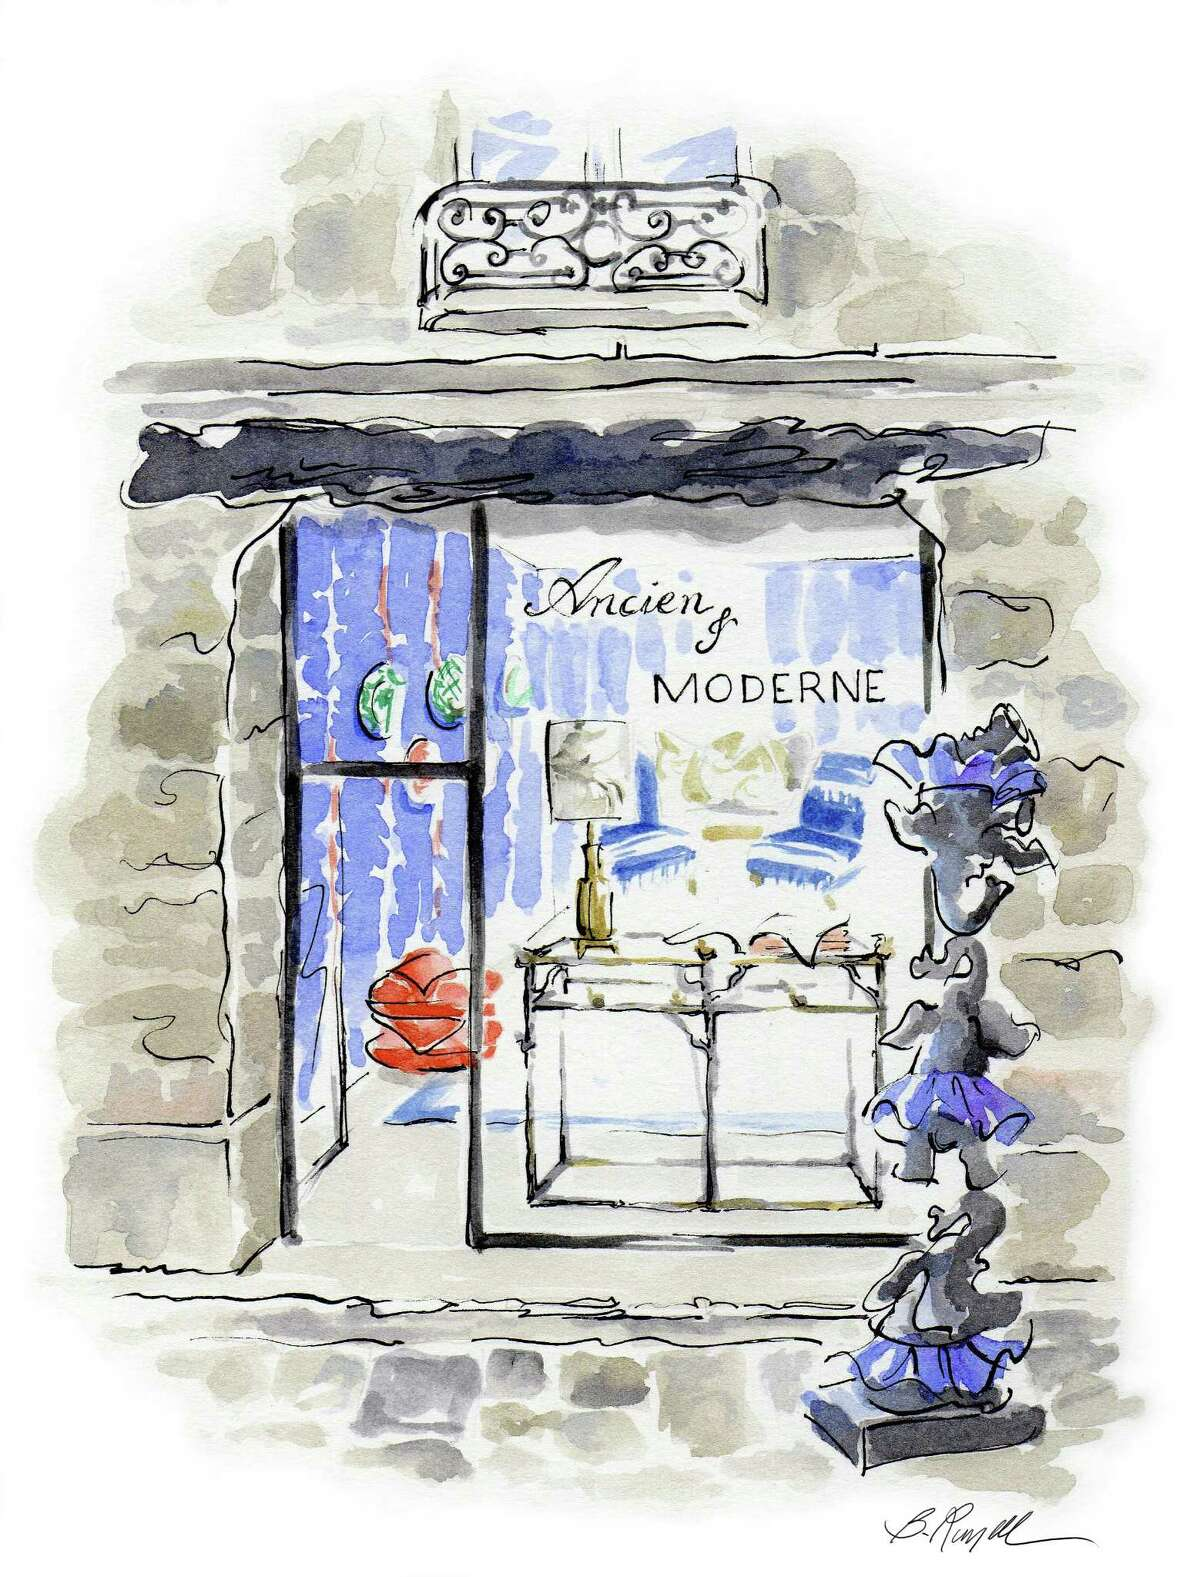 Art by Russell Melzer for a Paris pop-up salon.